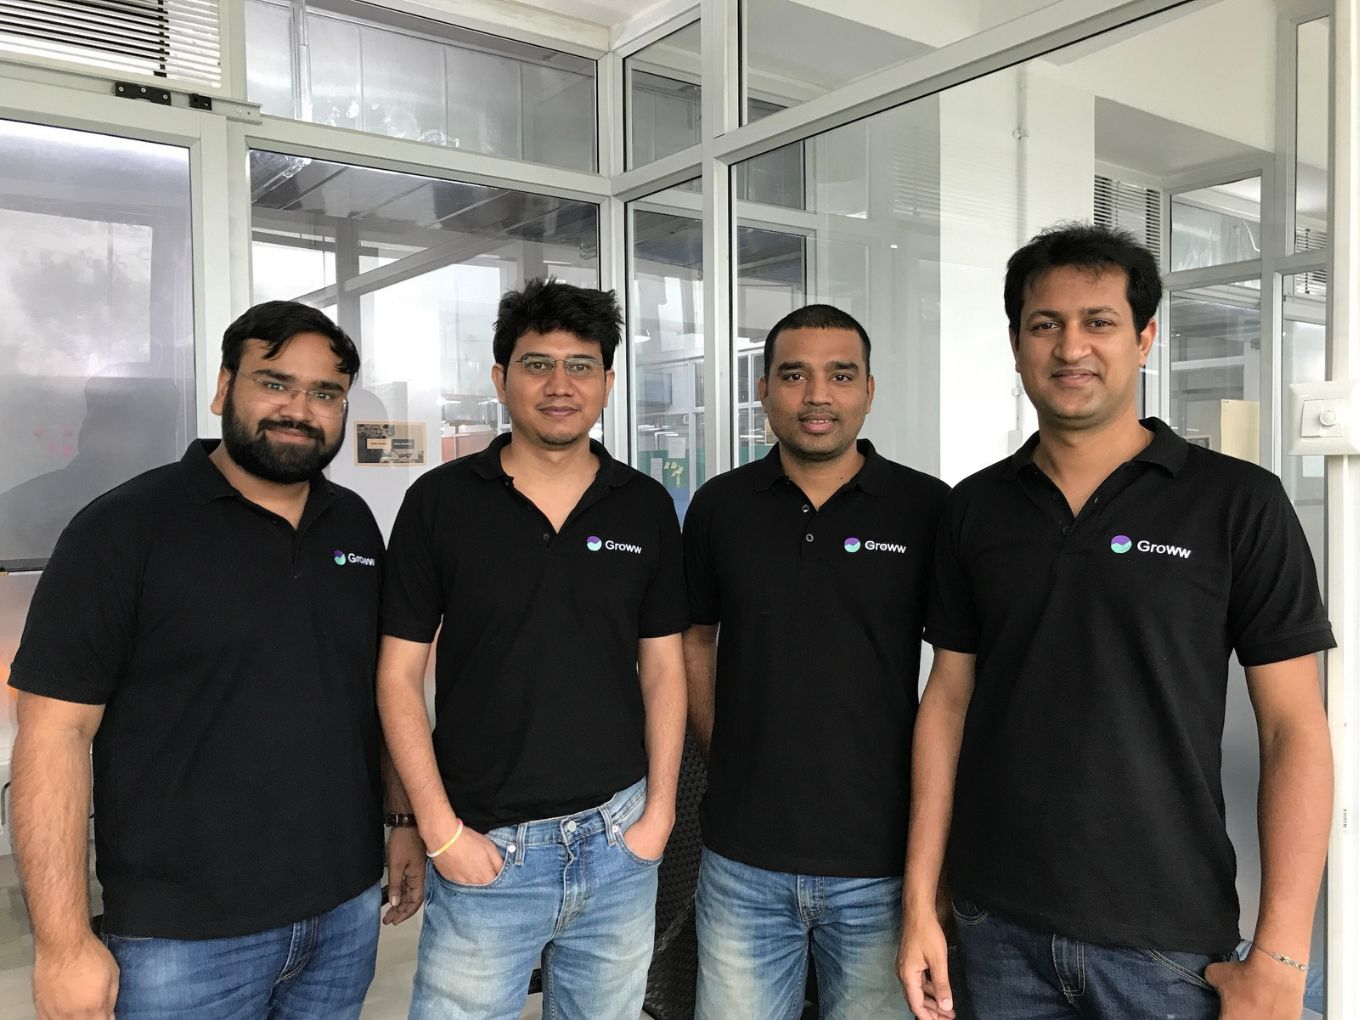 Former Flipkart Execs On Changing How India's Rising Young Workforce Invests And Saves With Groww